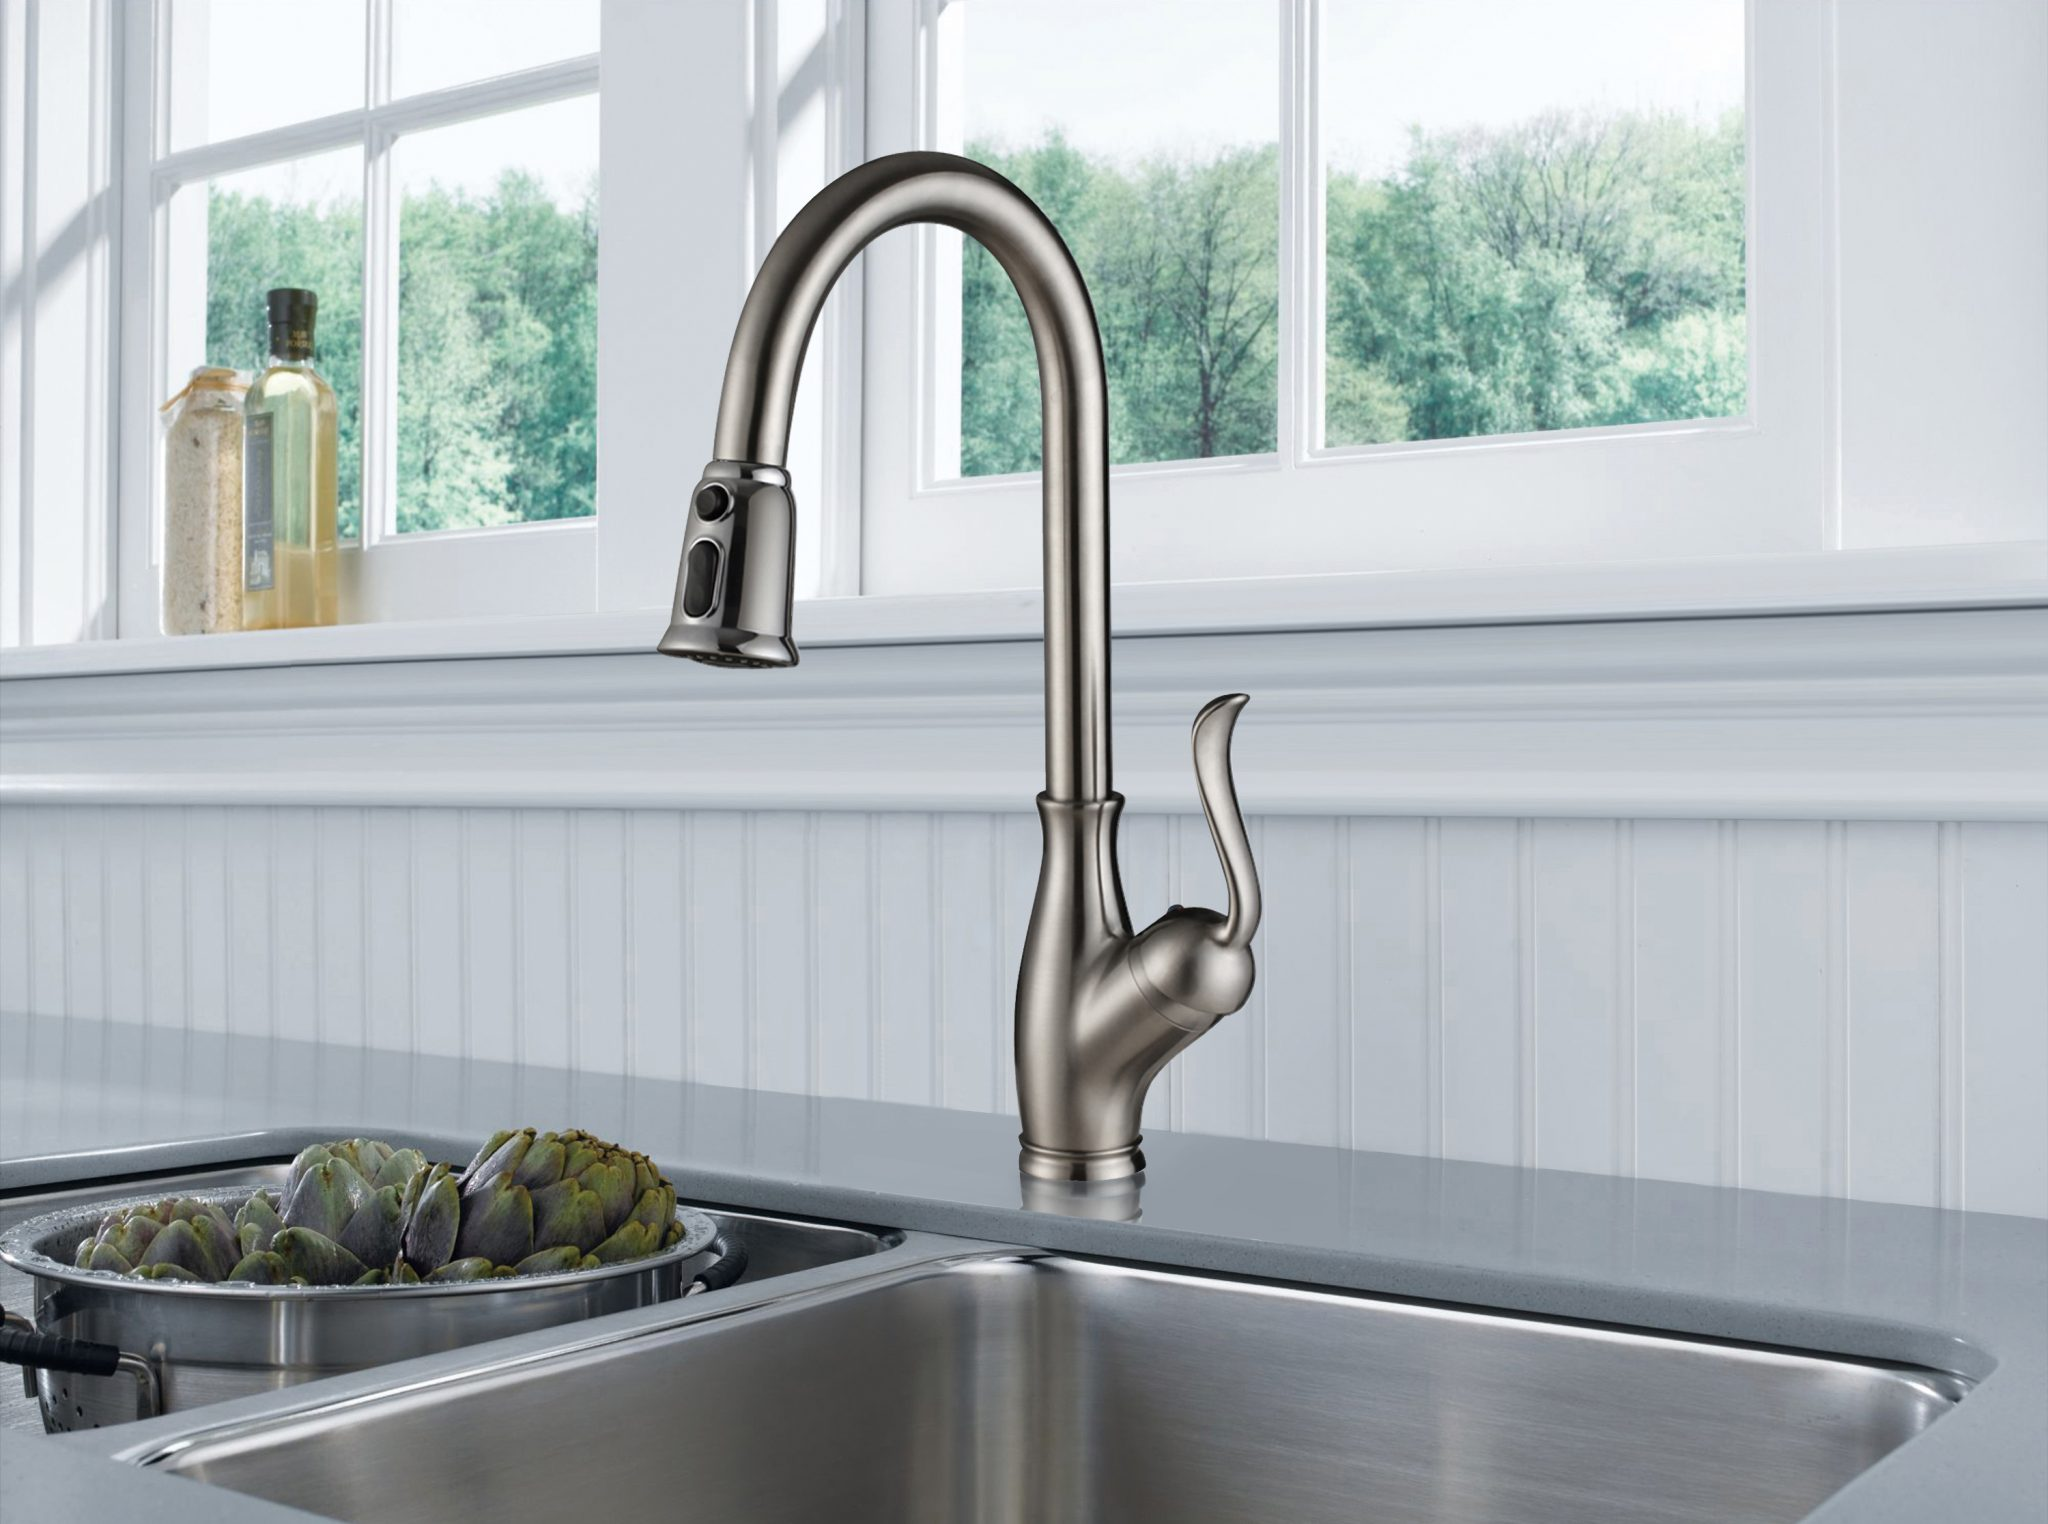 Awesome Kitchen Faucet Review Sketch - Faucet Collections ...